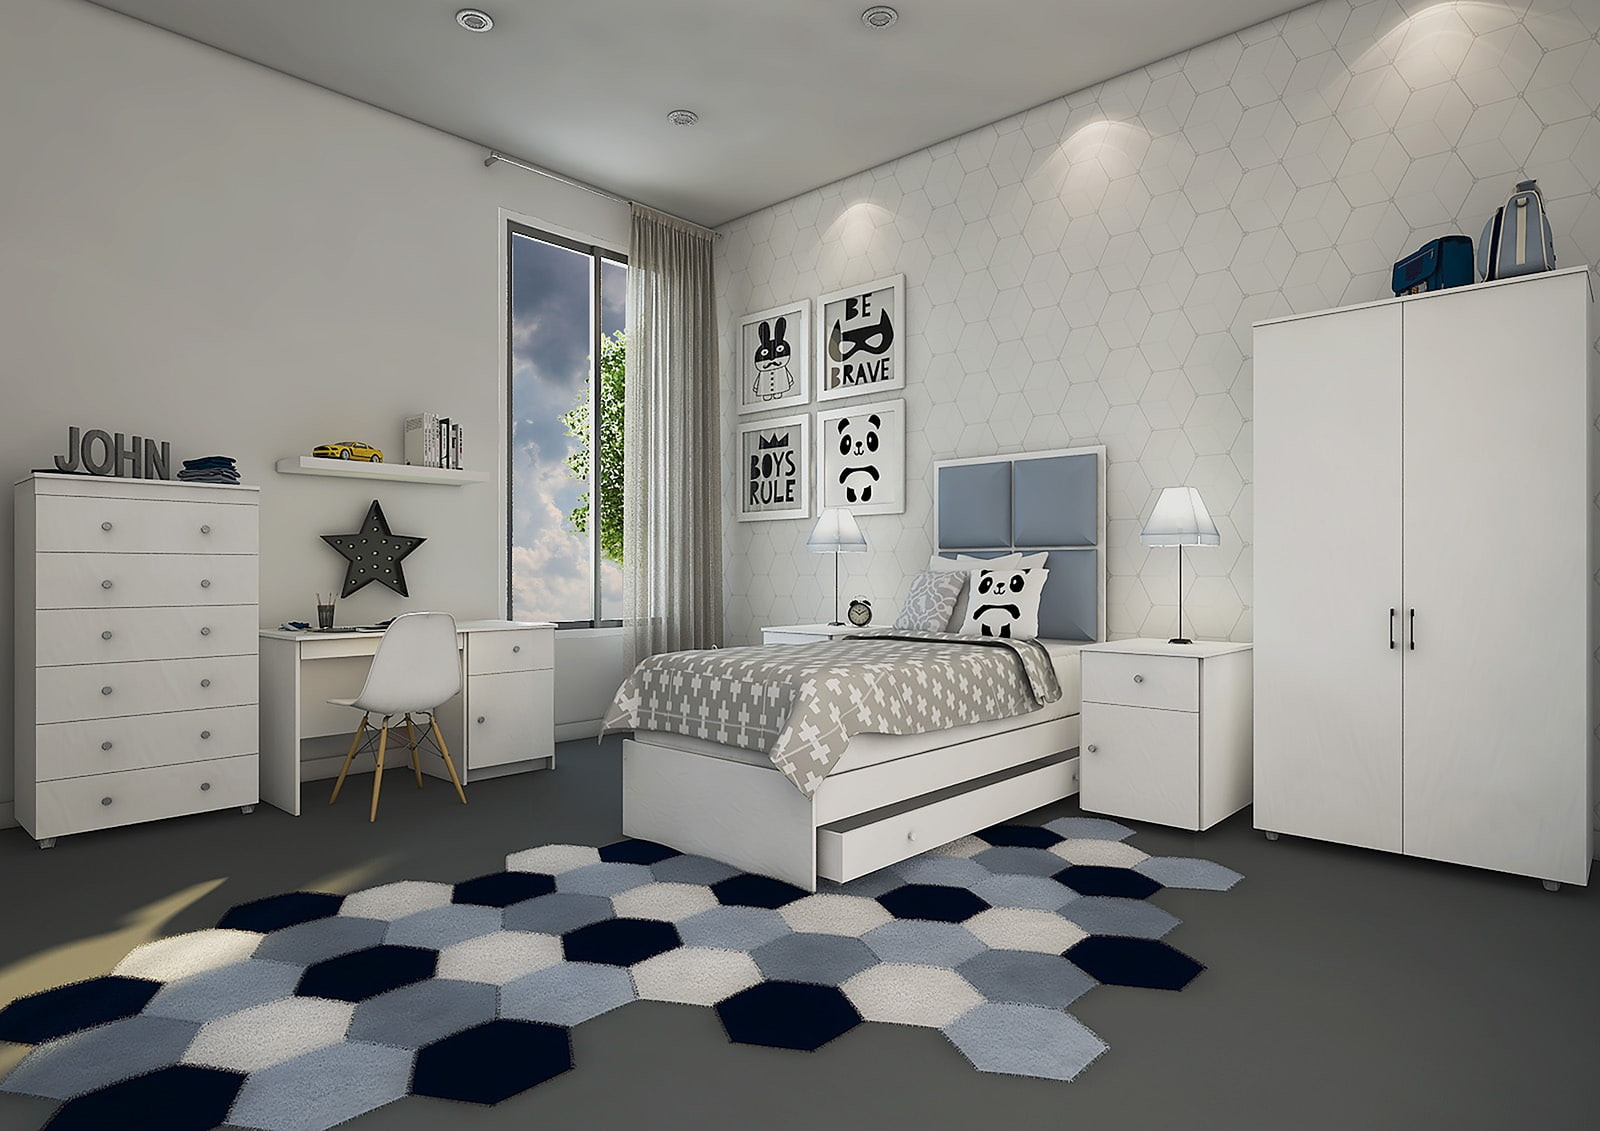 Bedroom In A Box >> Bedroom in a Box - White - Furniture Express